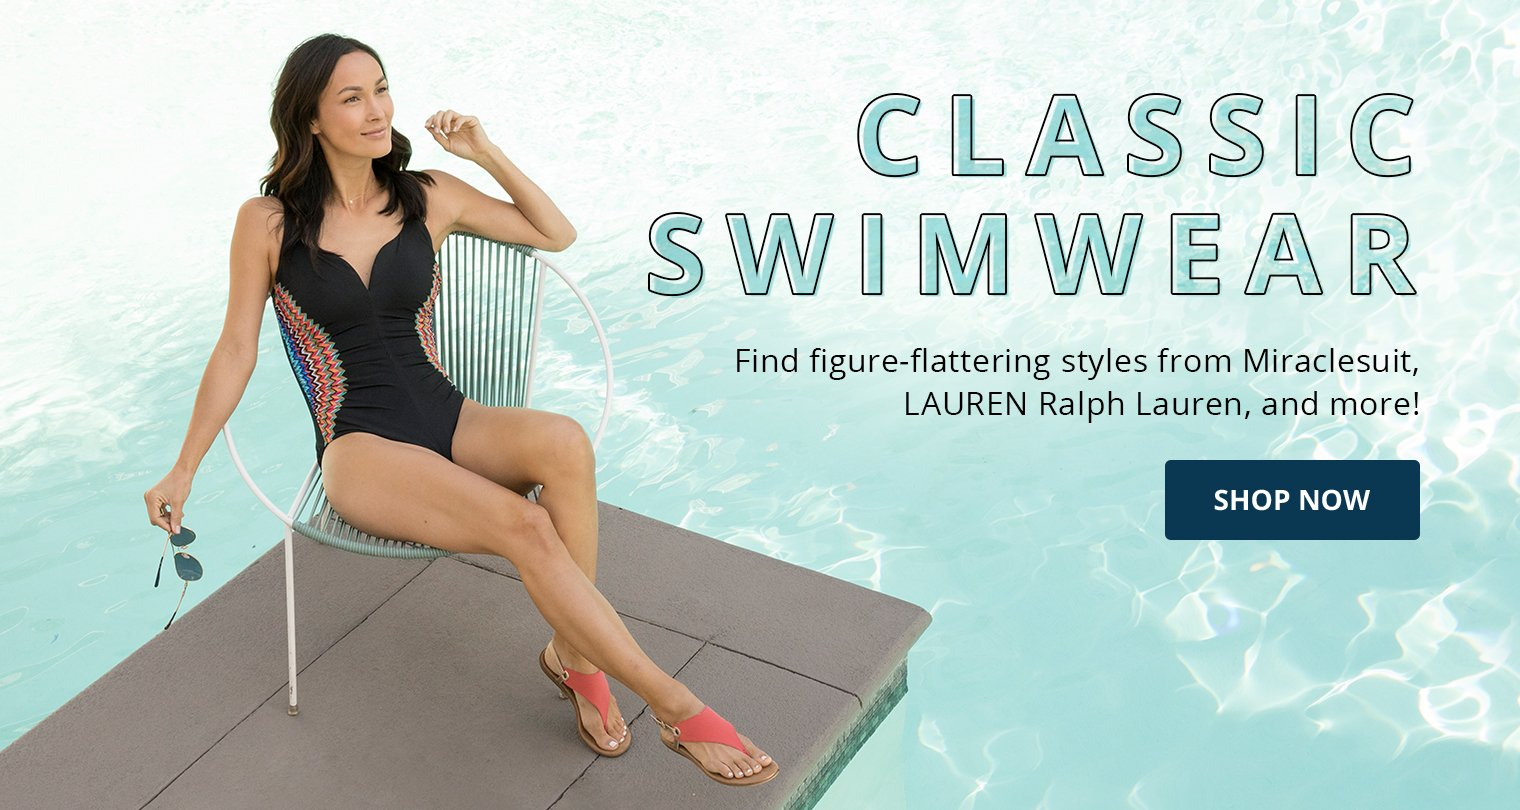 Classic Swim. Fine figure-flattering styles from Miraclesuit, LAUREN Ralph Lauren, and more! Shop Now.